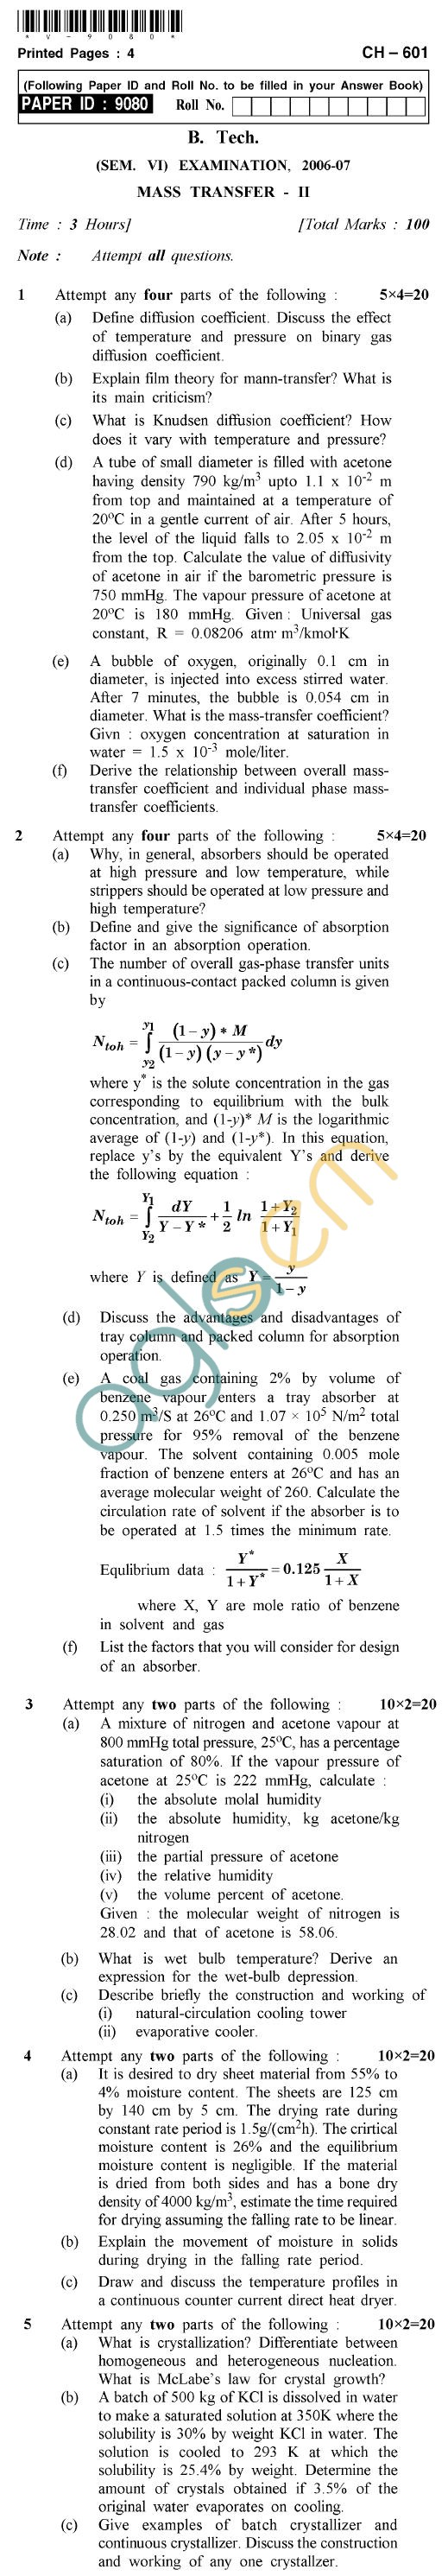 UPTU B.Tech Question Papers - CH-601 - Mass Transfer-II